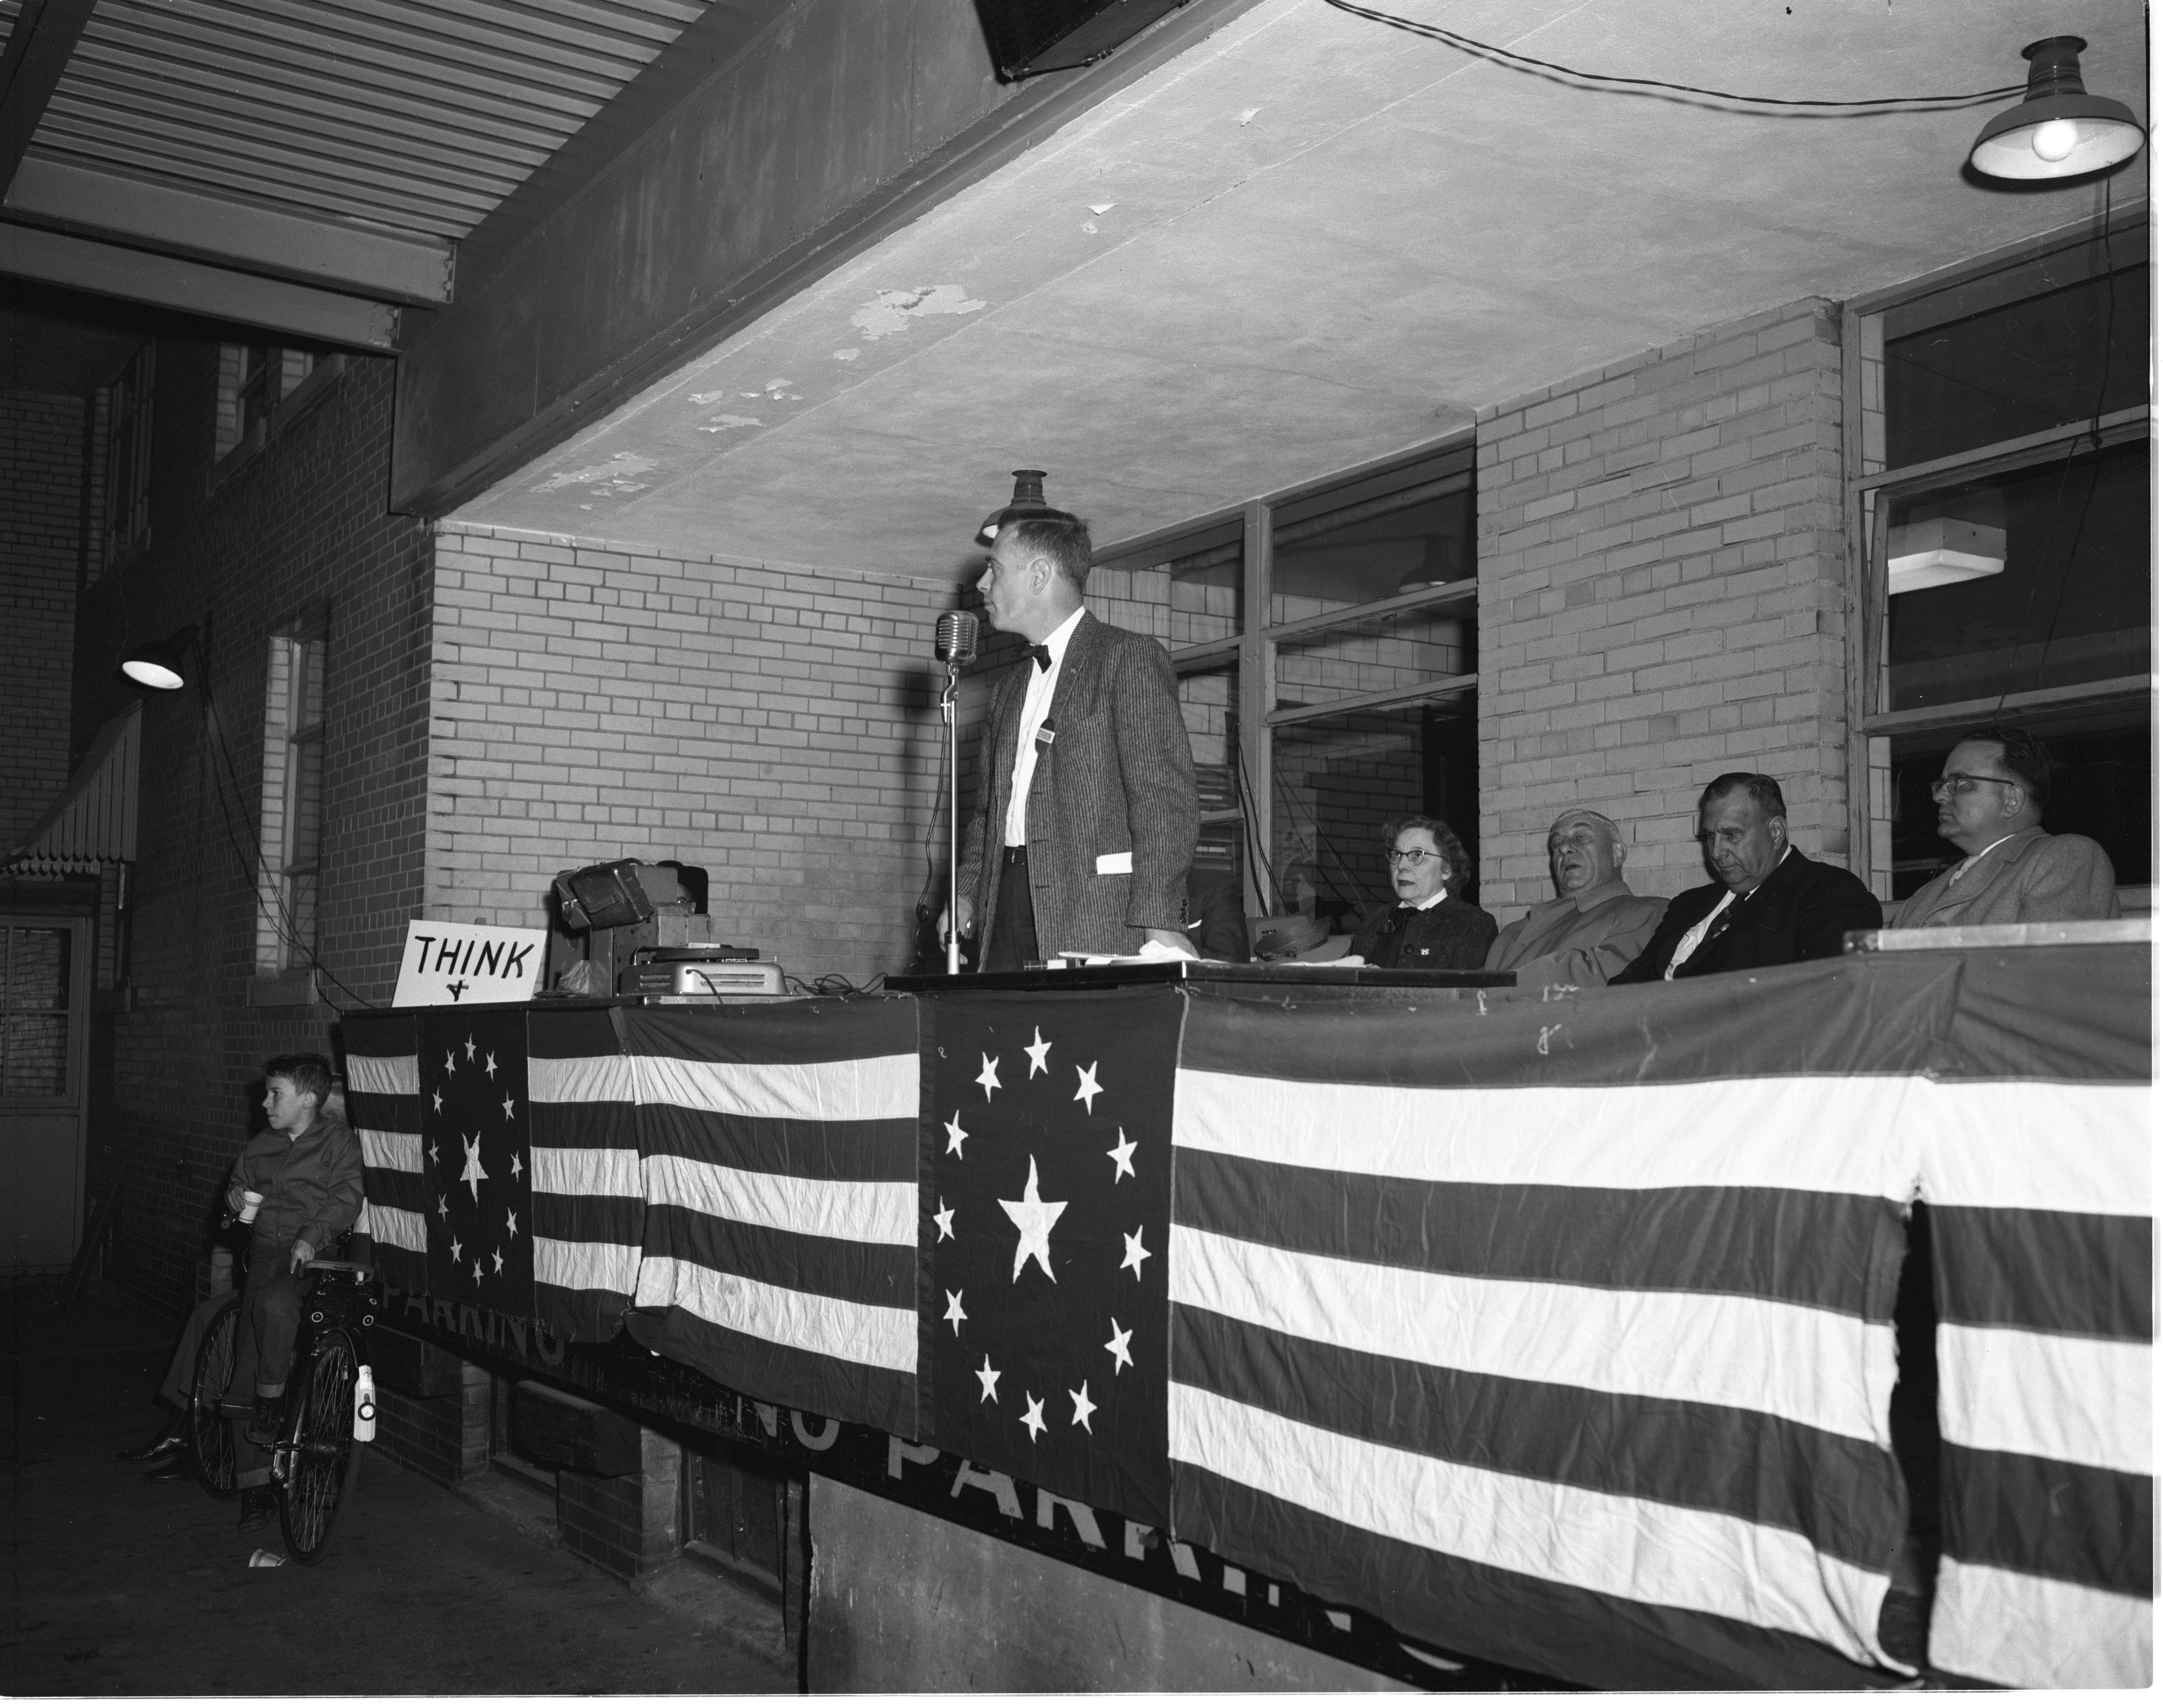 Arthur E. Carpenter Speaks At The Get-Out-The-Vote Rally, October 1956 image